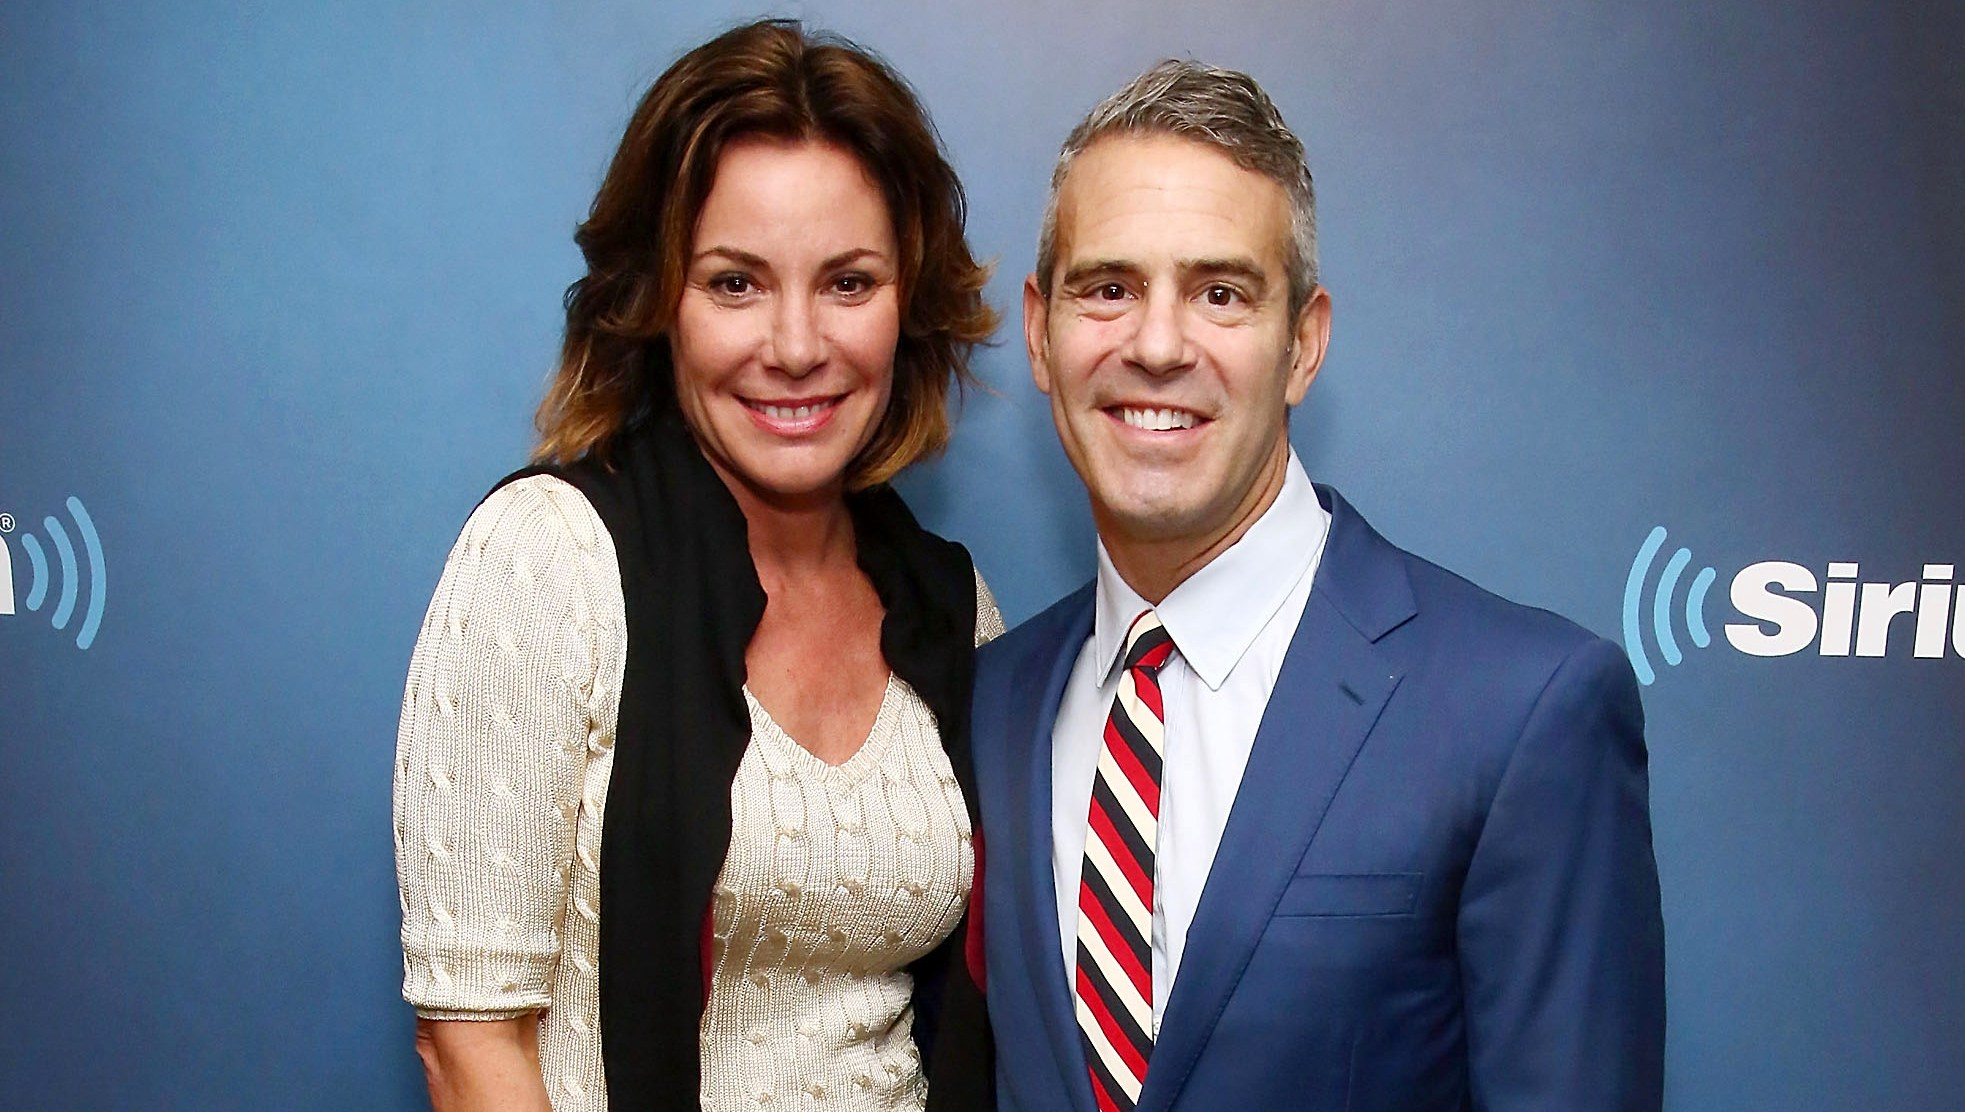 Luann de Lesseps and Andy Cohen